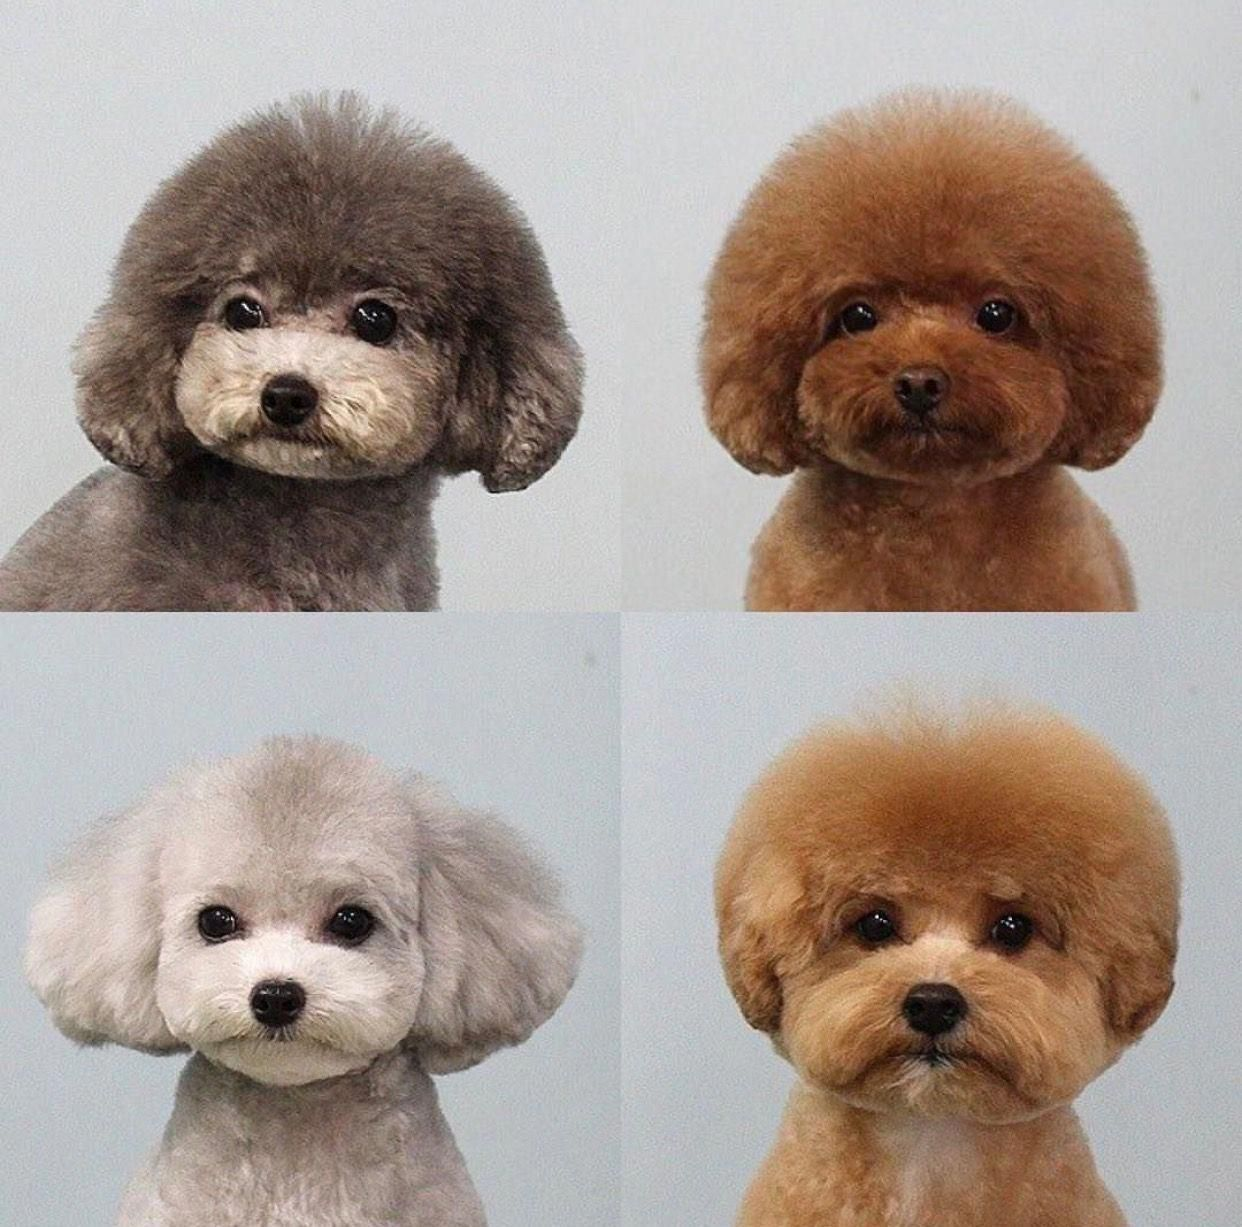 They Re Actually All Over More Than Likely Since They Are Two Of The Most Popular Canine Types In America According To The Dog Haircuts Dog Grooming Cute Dogs